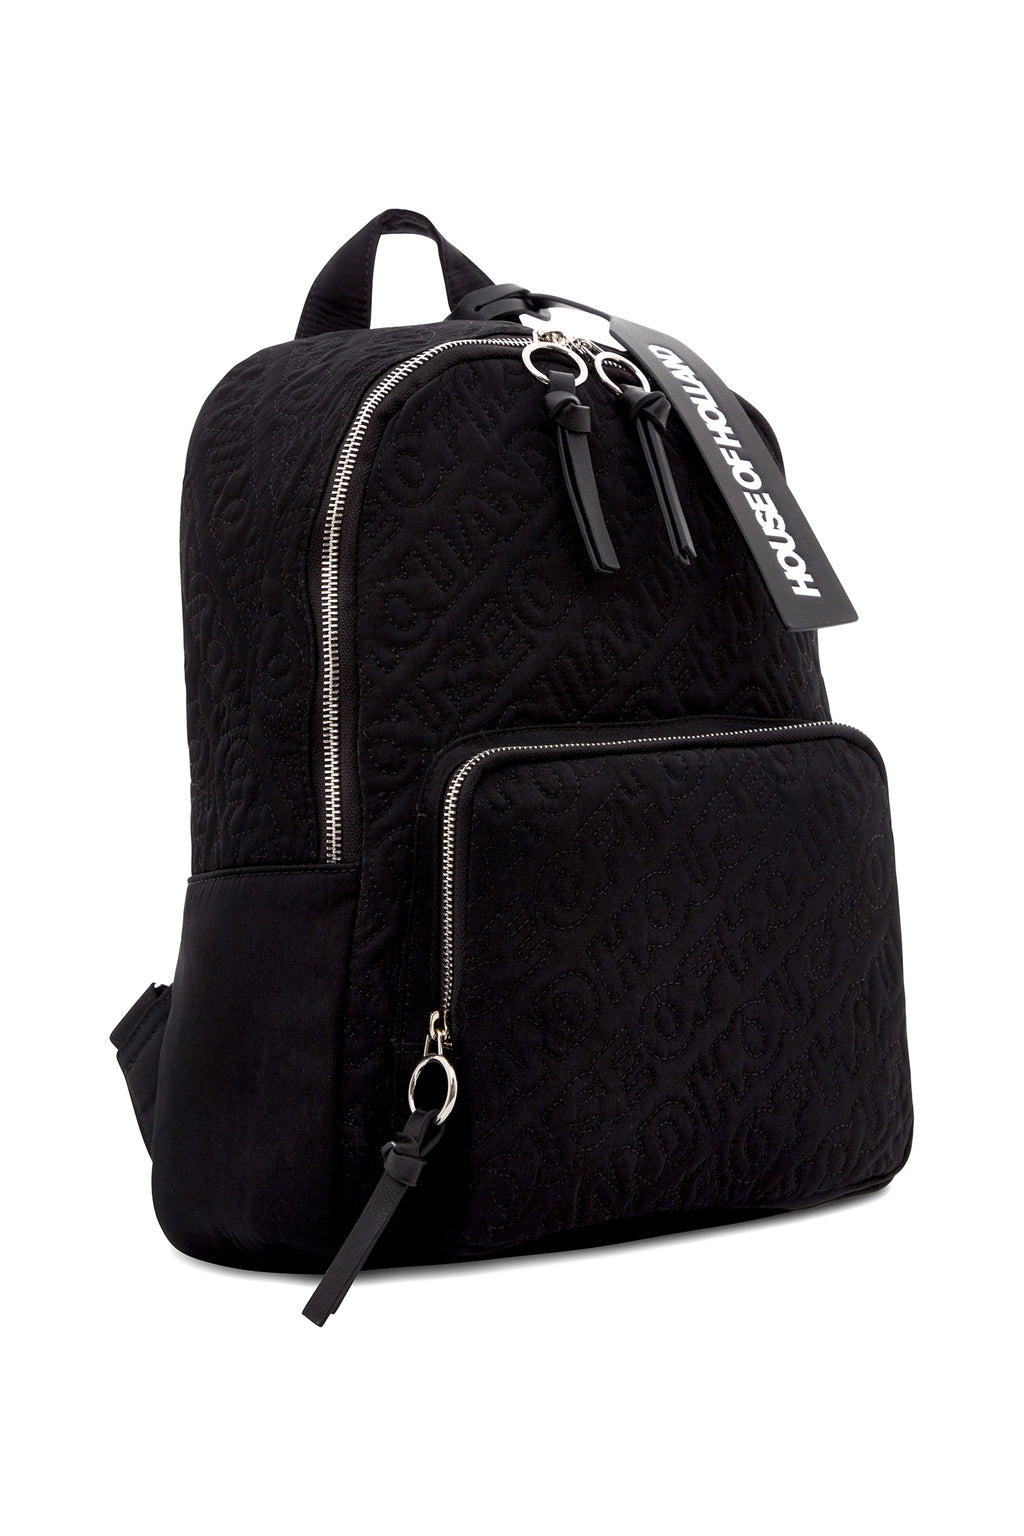 'HOH' Black Embroidered Backpack